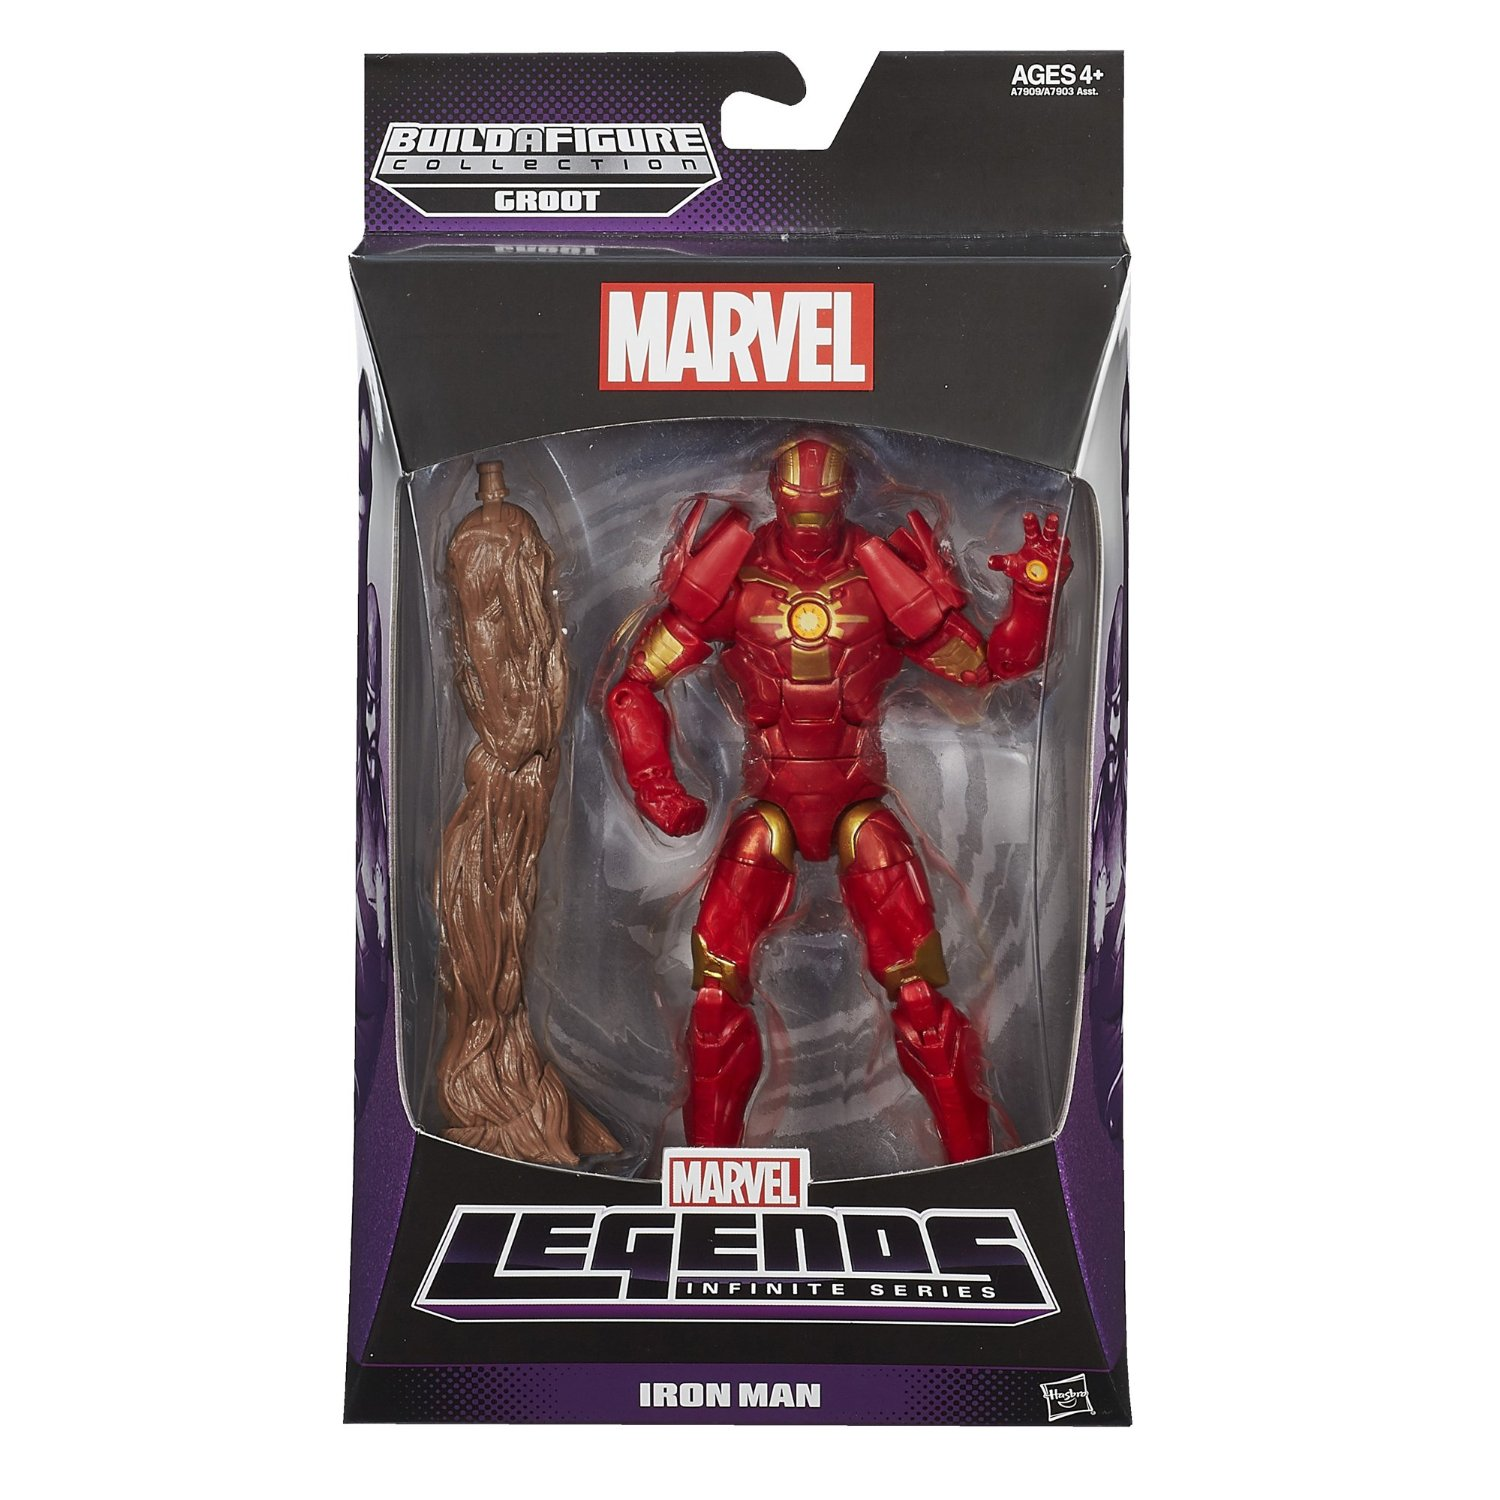 Guardians of the Galaxy Marvel Legends Wave 1 Iron Man Action Figure